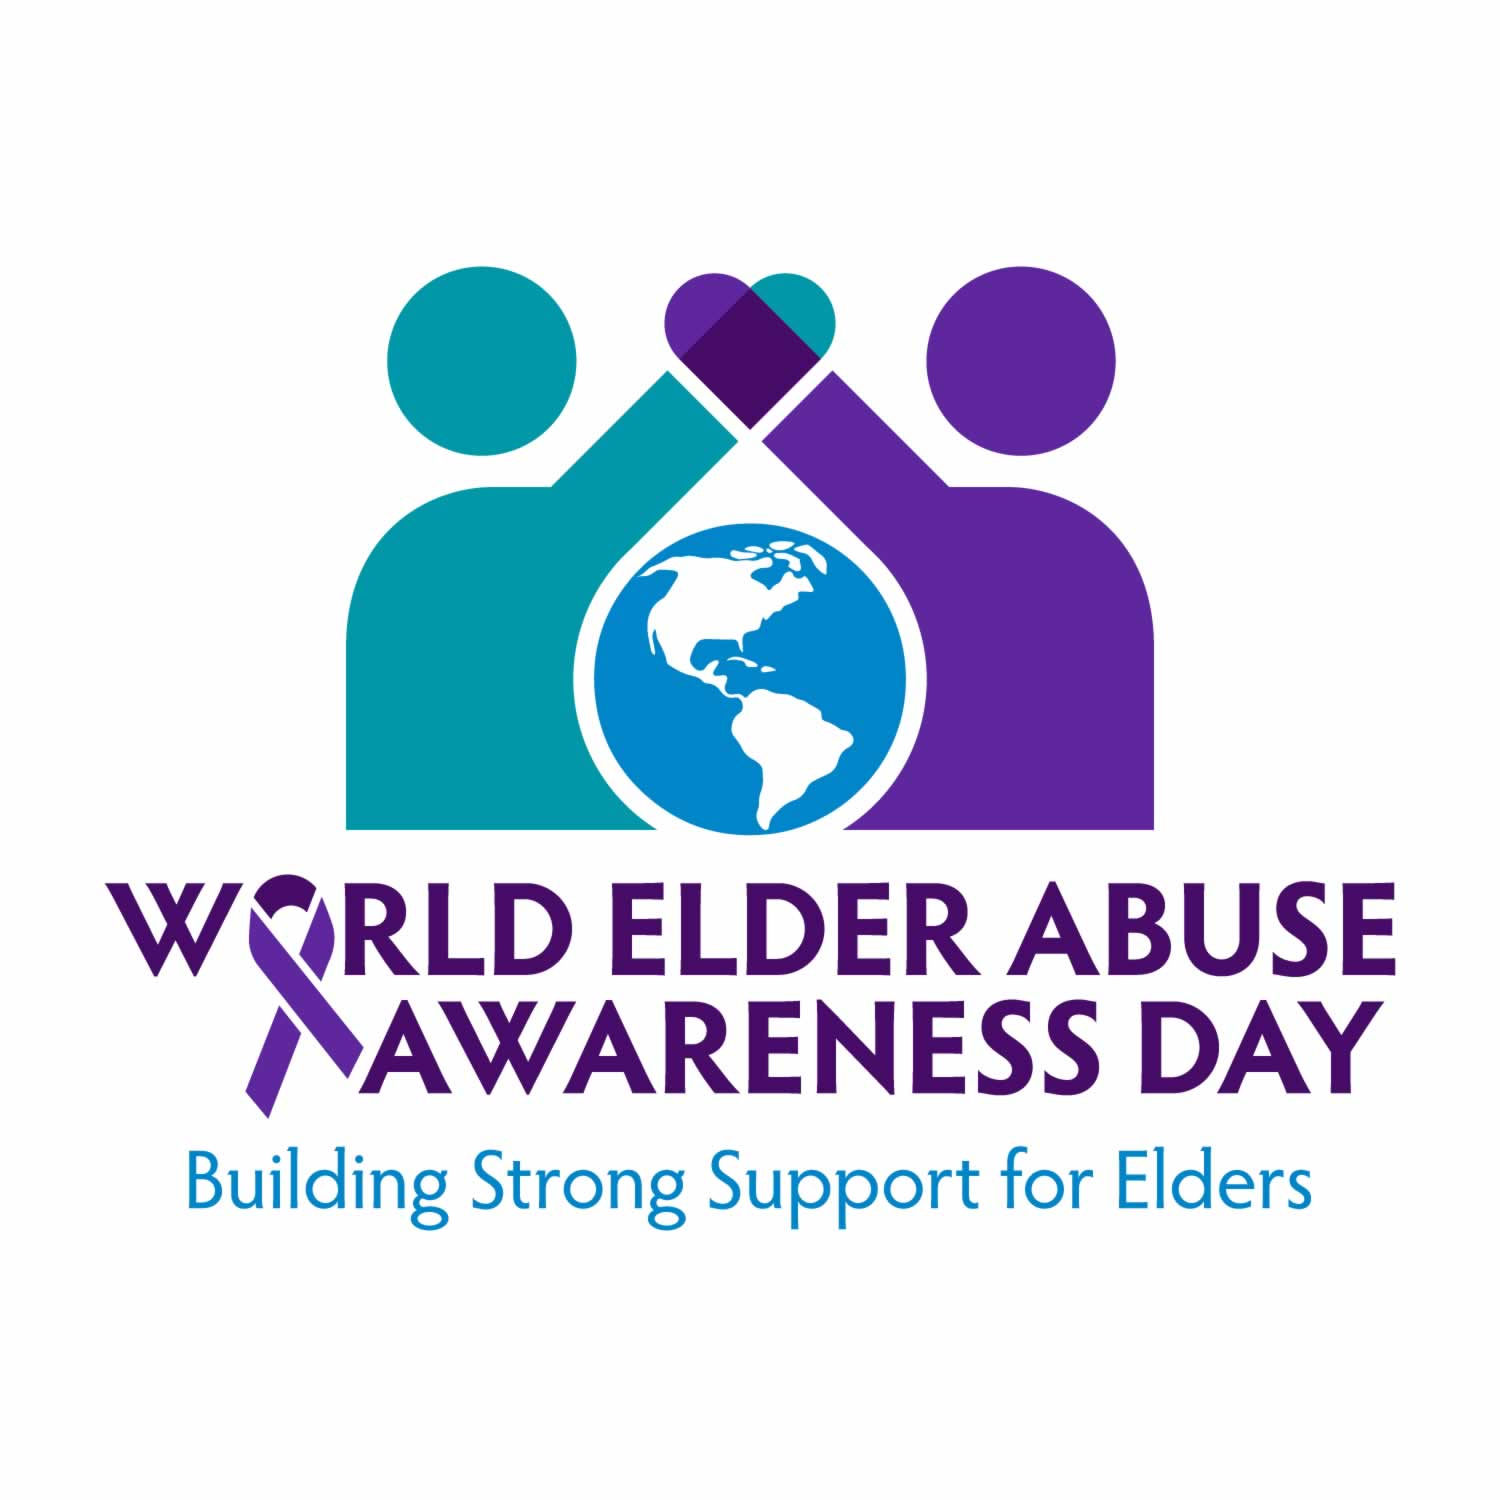 World Elder Abuse Awareness Day - Building strong support for elders